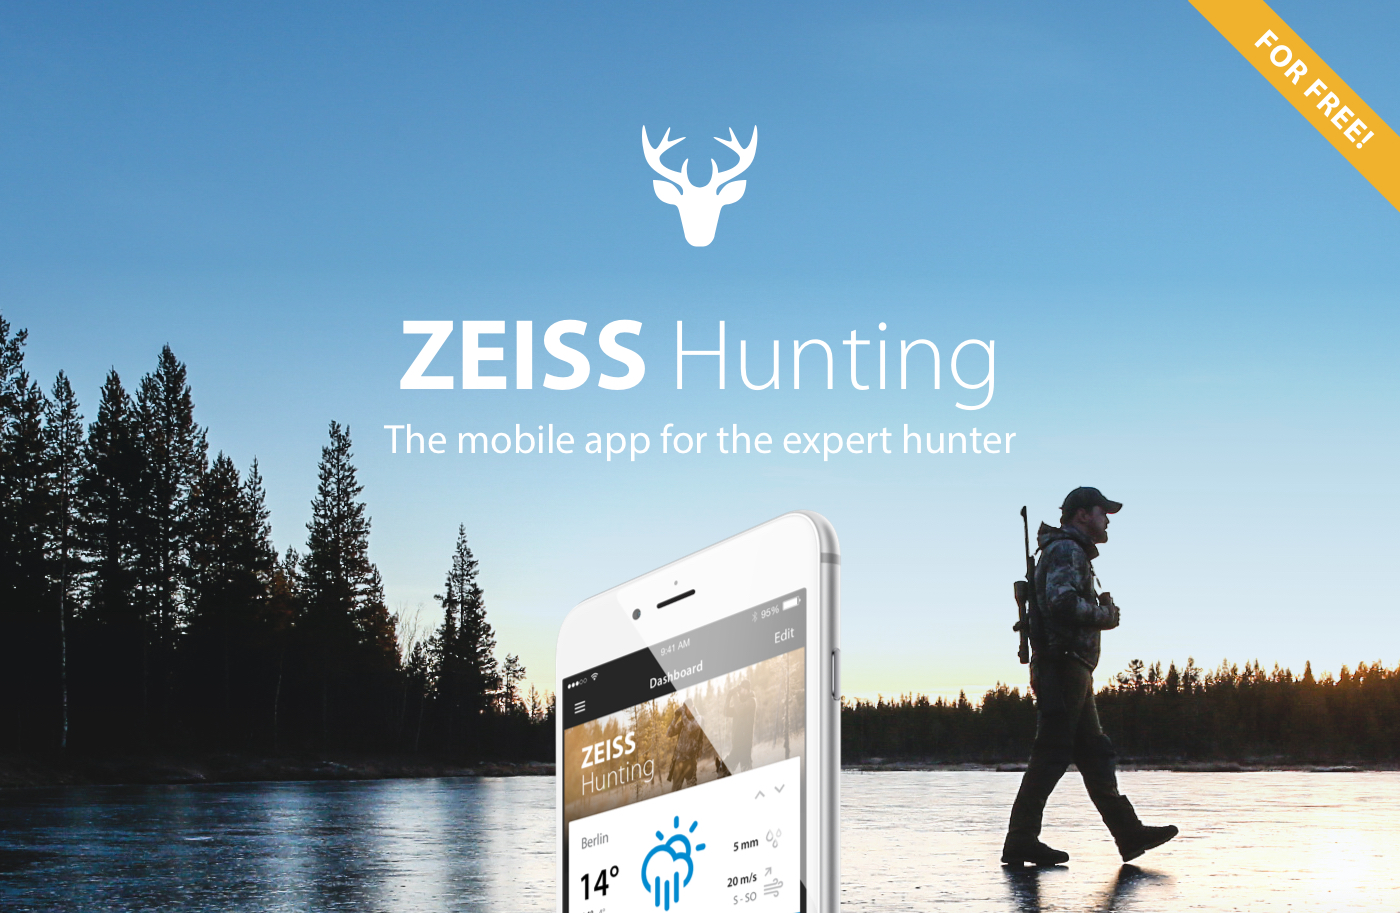 ZEISS Hunting App Title